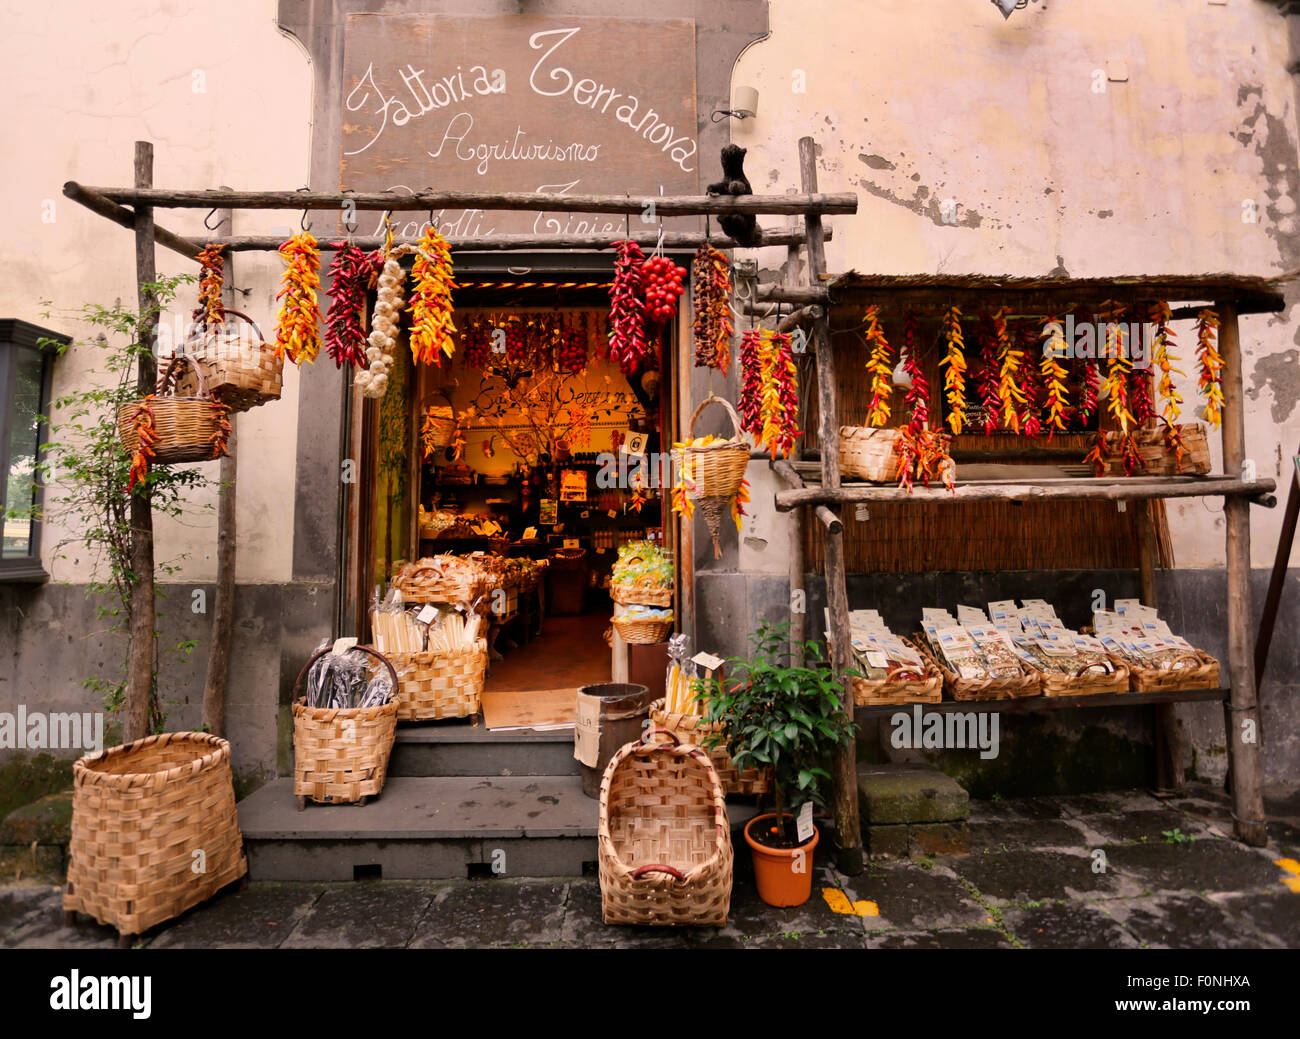 TRADITIONAL ITALIAN FOOD SHOP,AMALFI COAST,ITALY - Stock Image